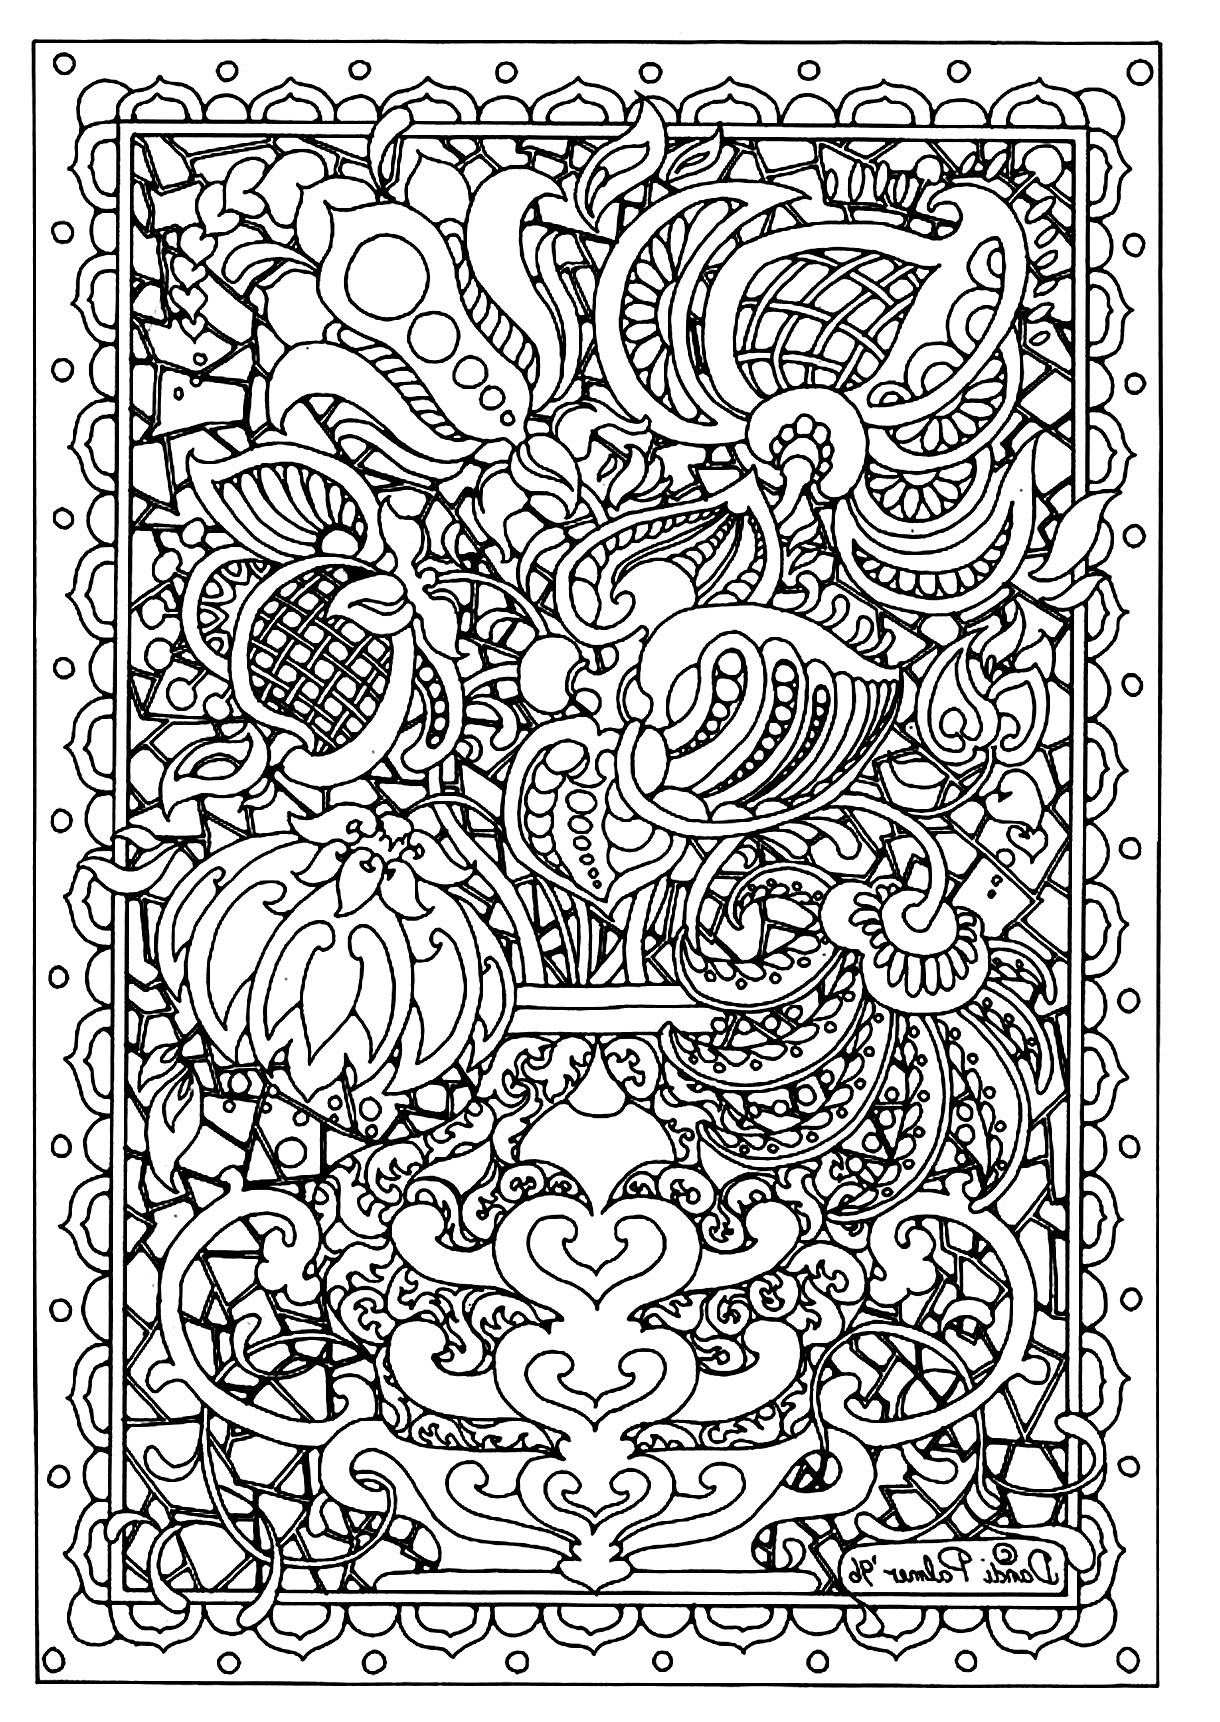 Flower difficult - Flowers Adult Coloring Pages